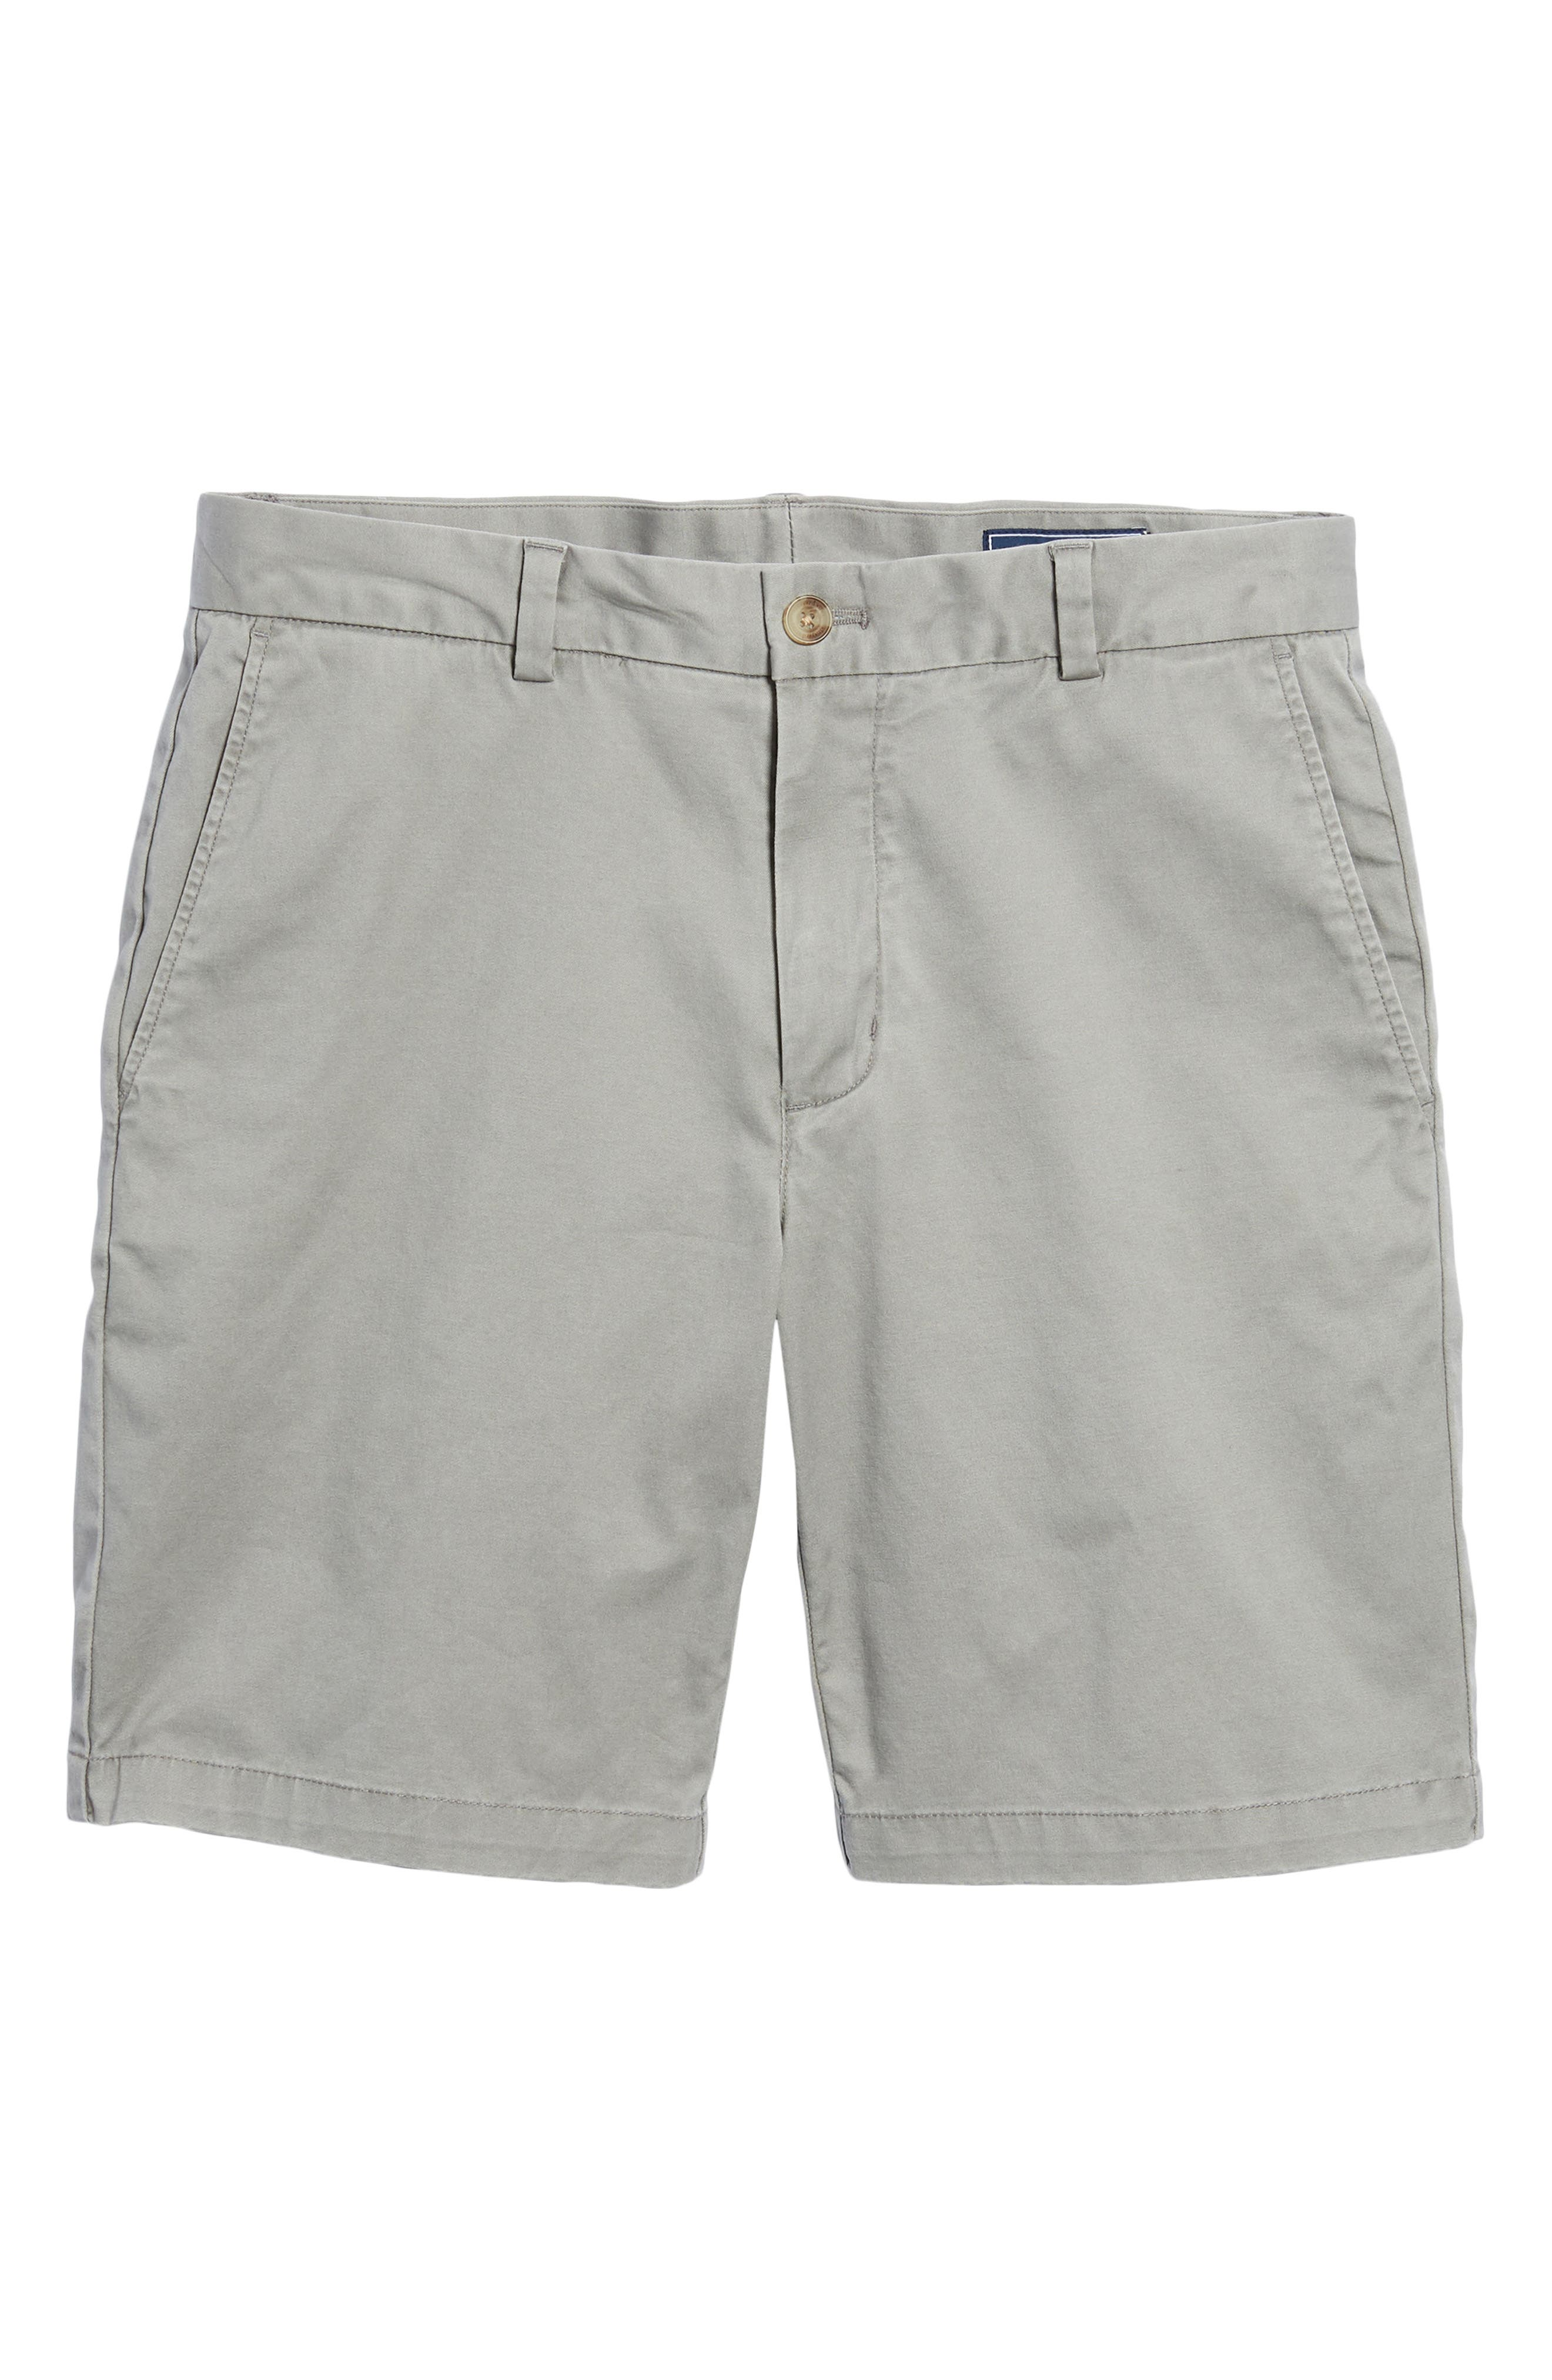 VINEYARD VINES, 9 Inch Stretch Breaker Shorts, Alternate thumbnail 6, color, ANCHOR GREY